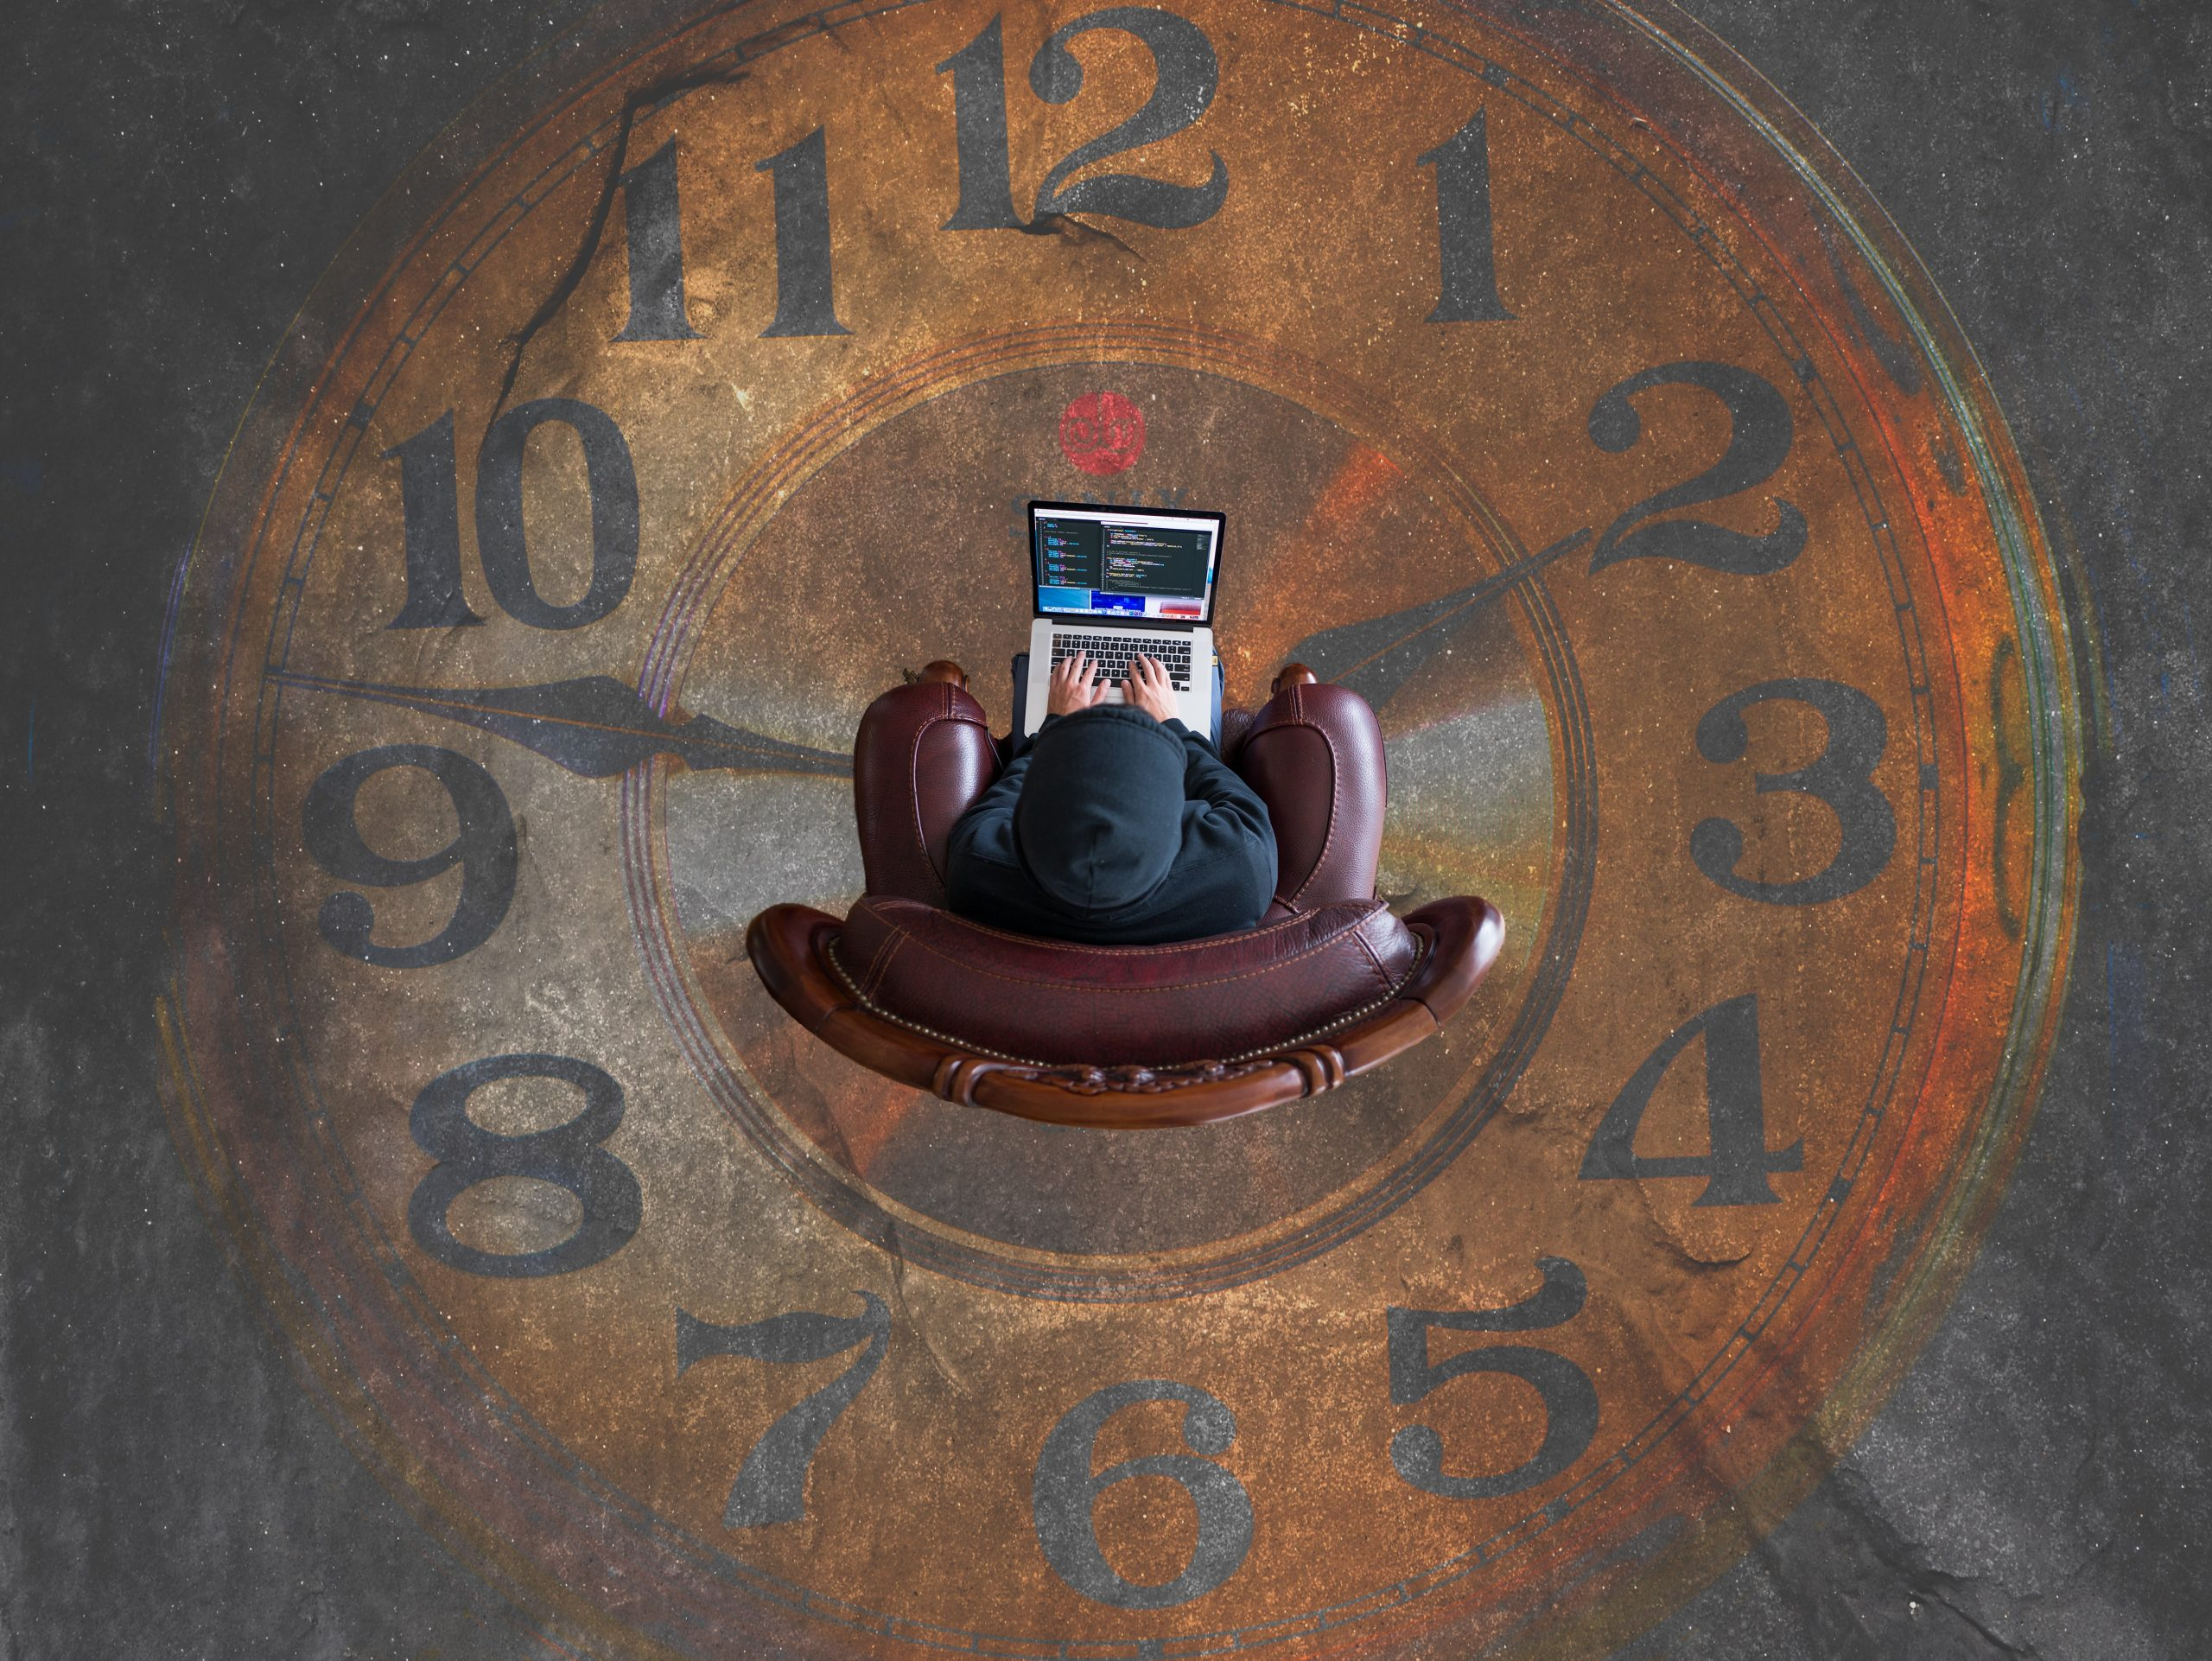 a person sitting at a laptop on a chair in the middle of an image of an analogue clock